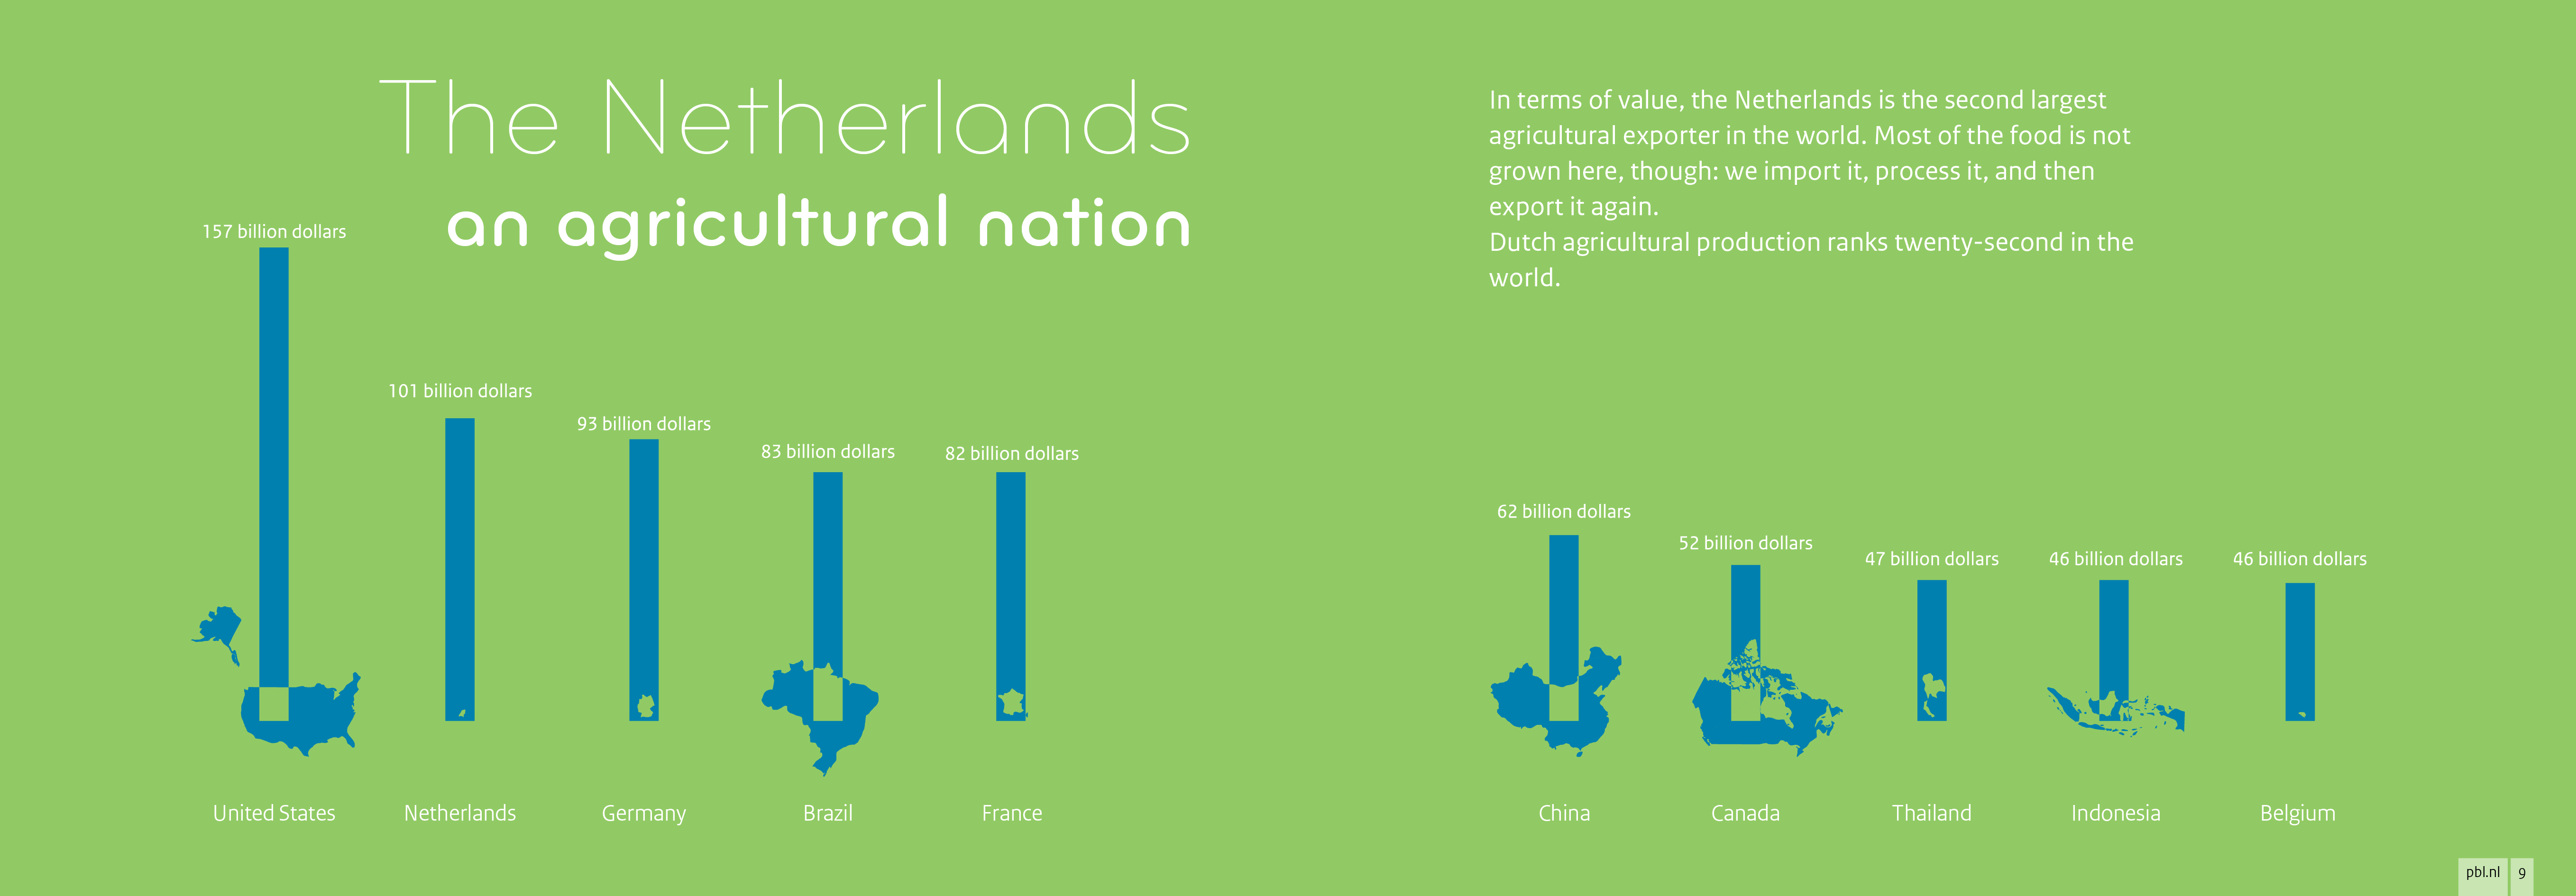 In terms of value, the Netherlands is the second largest agricultural exporter in the world.